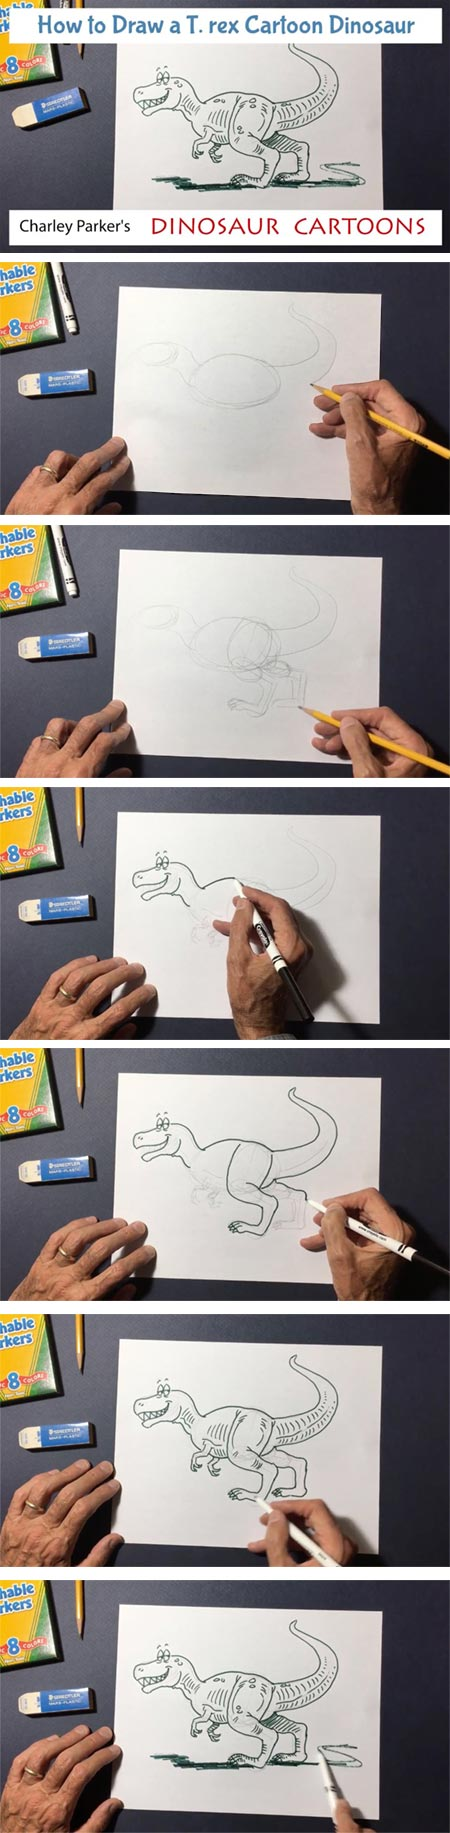 How to Draw a T.rex Cartoon Dinosaur, how to video